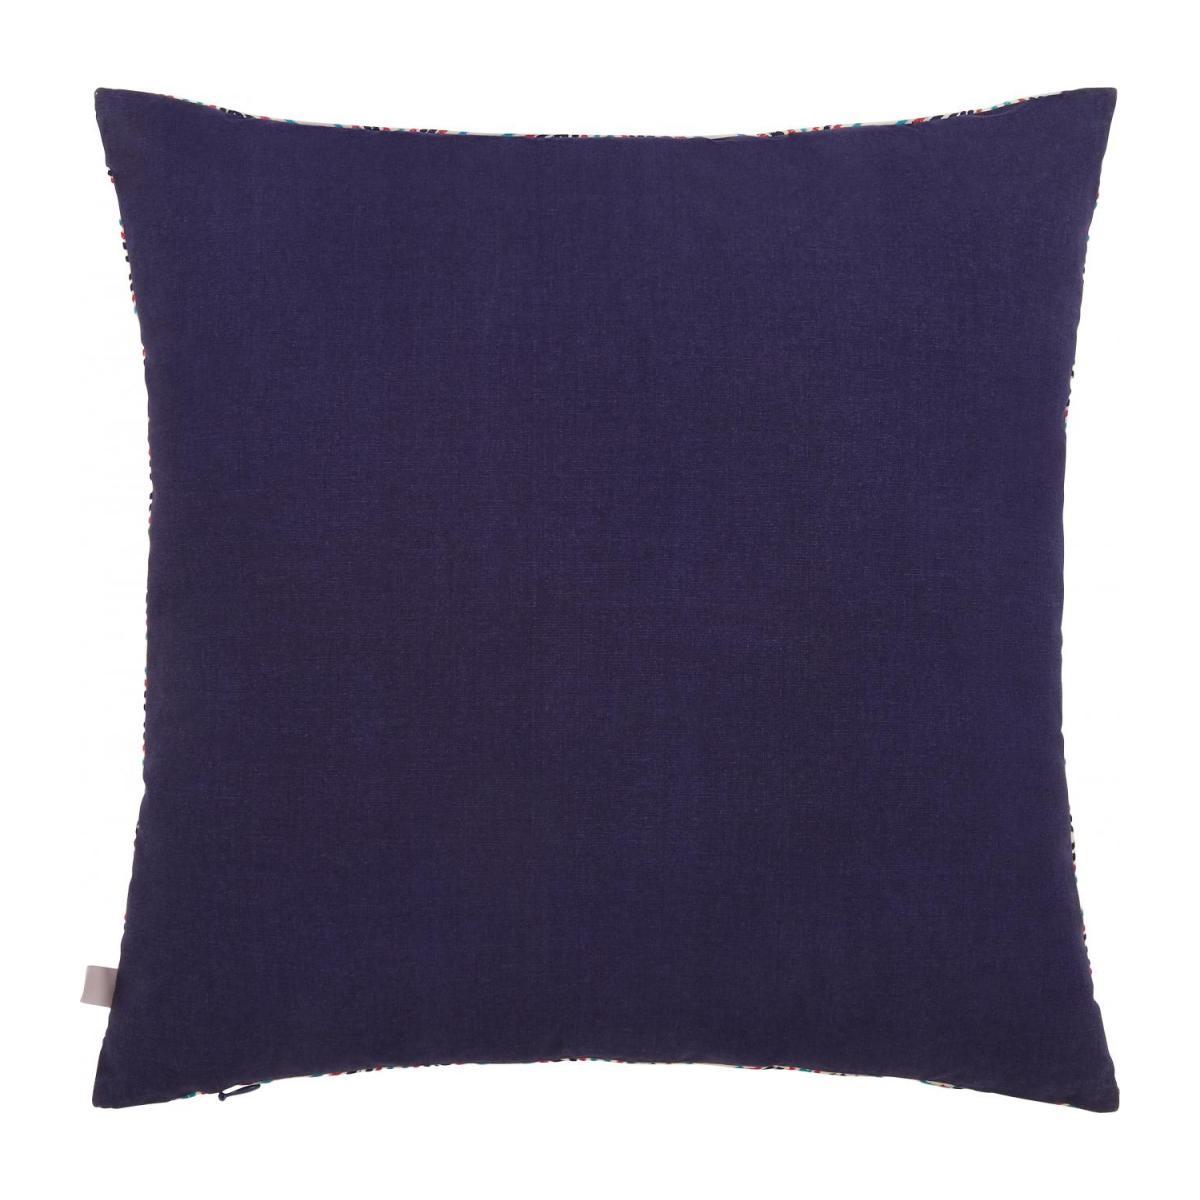 Embroidered cushion made of cotton 45x45cm, with patterns n°4